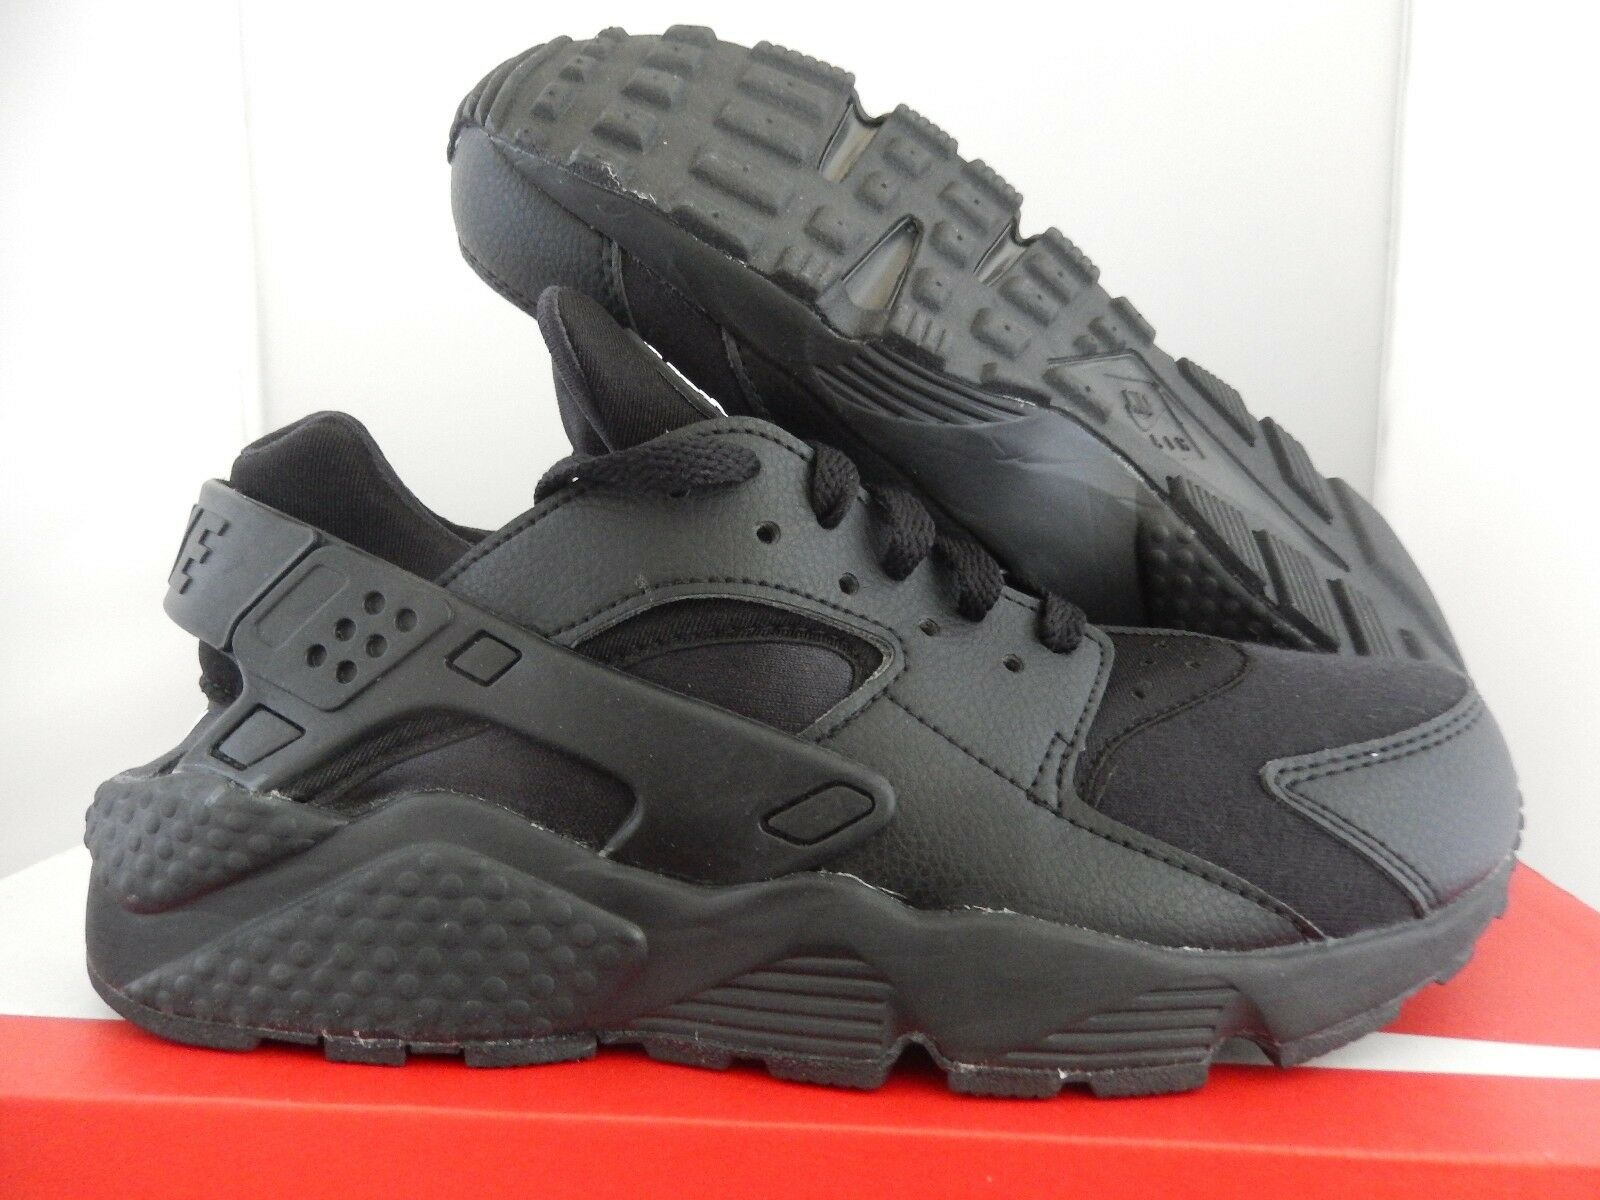 MEN'S NIKE HUARACHE ID BLACK-WHITE SZ 6.5-WOMENS SZ 8 [777330-996]